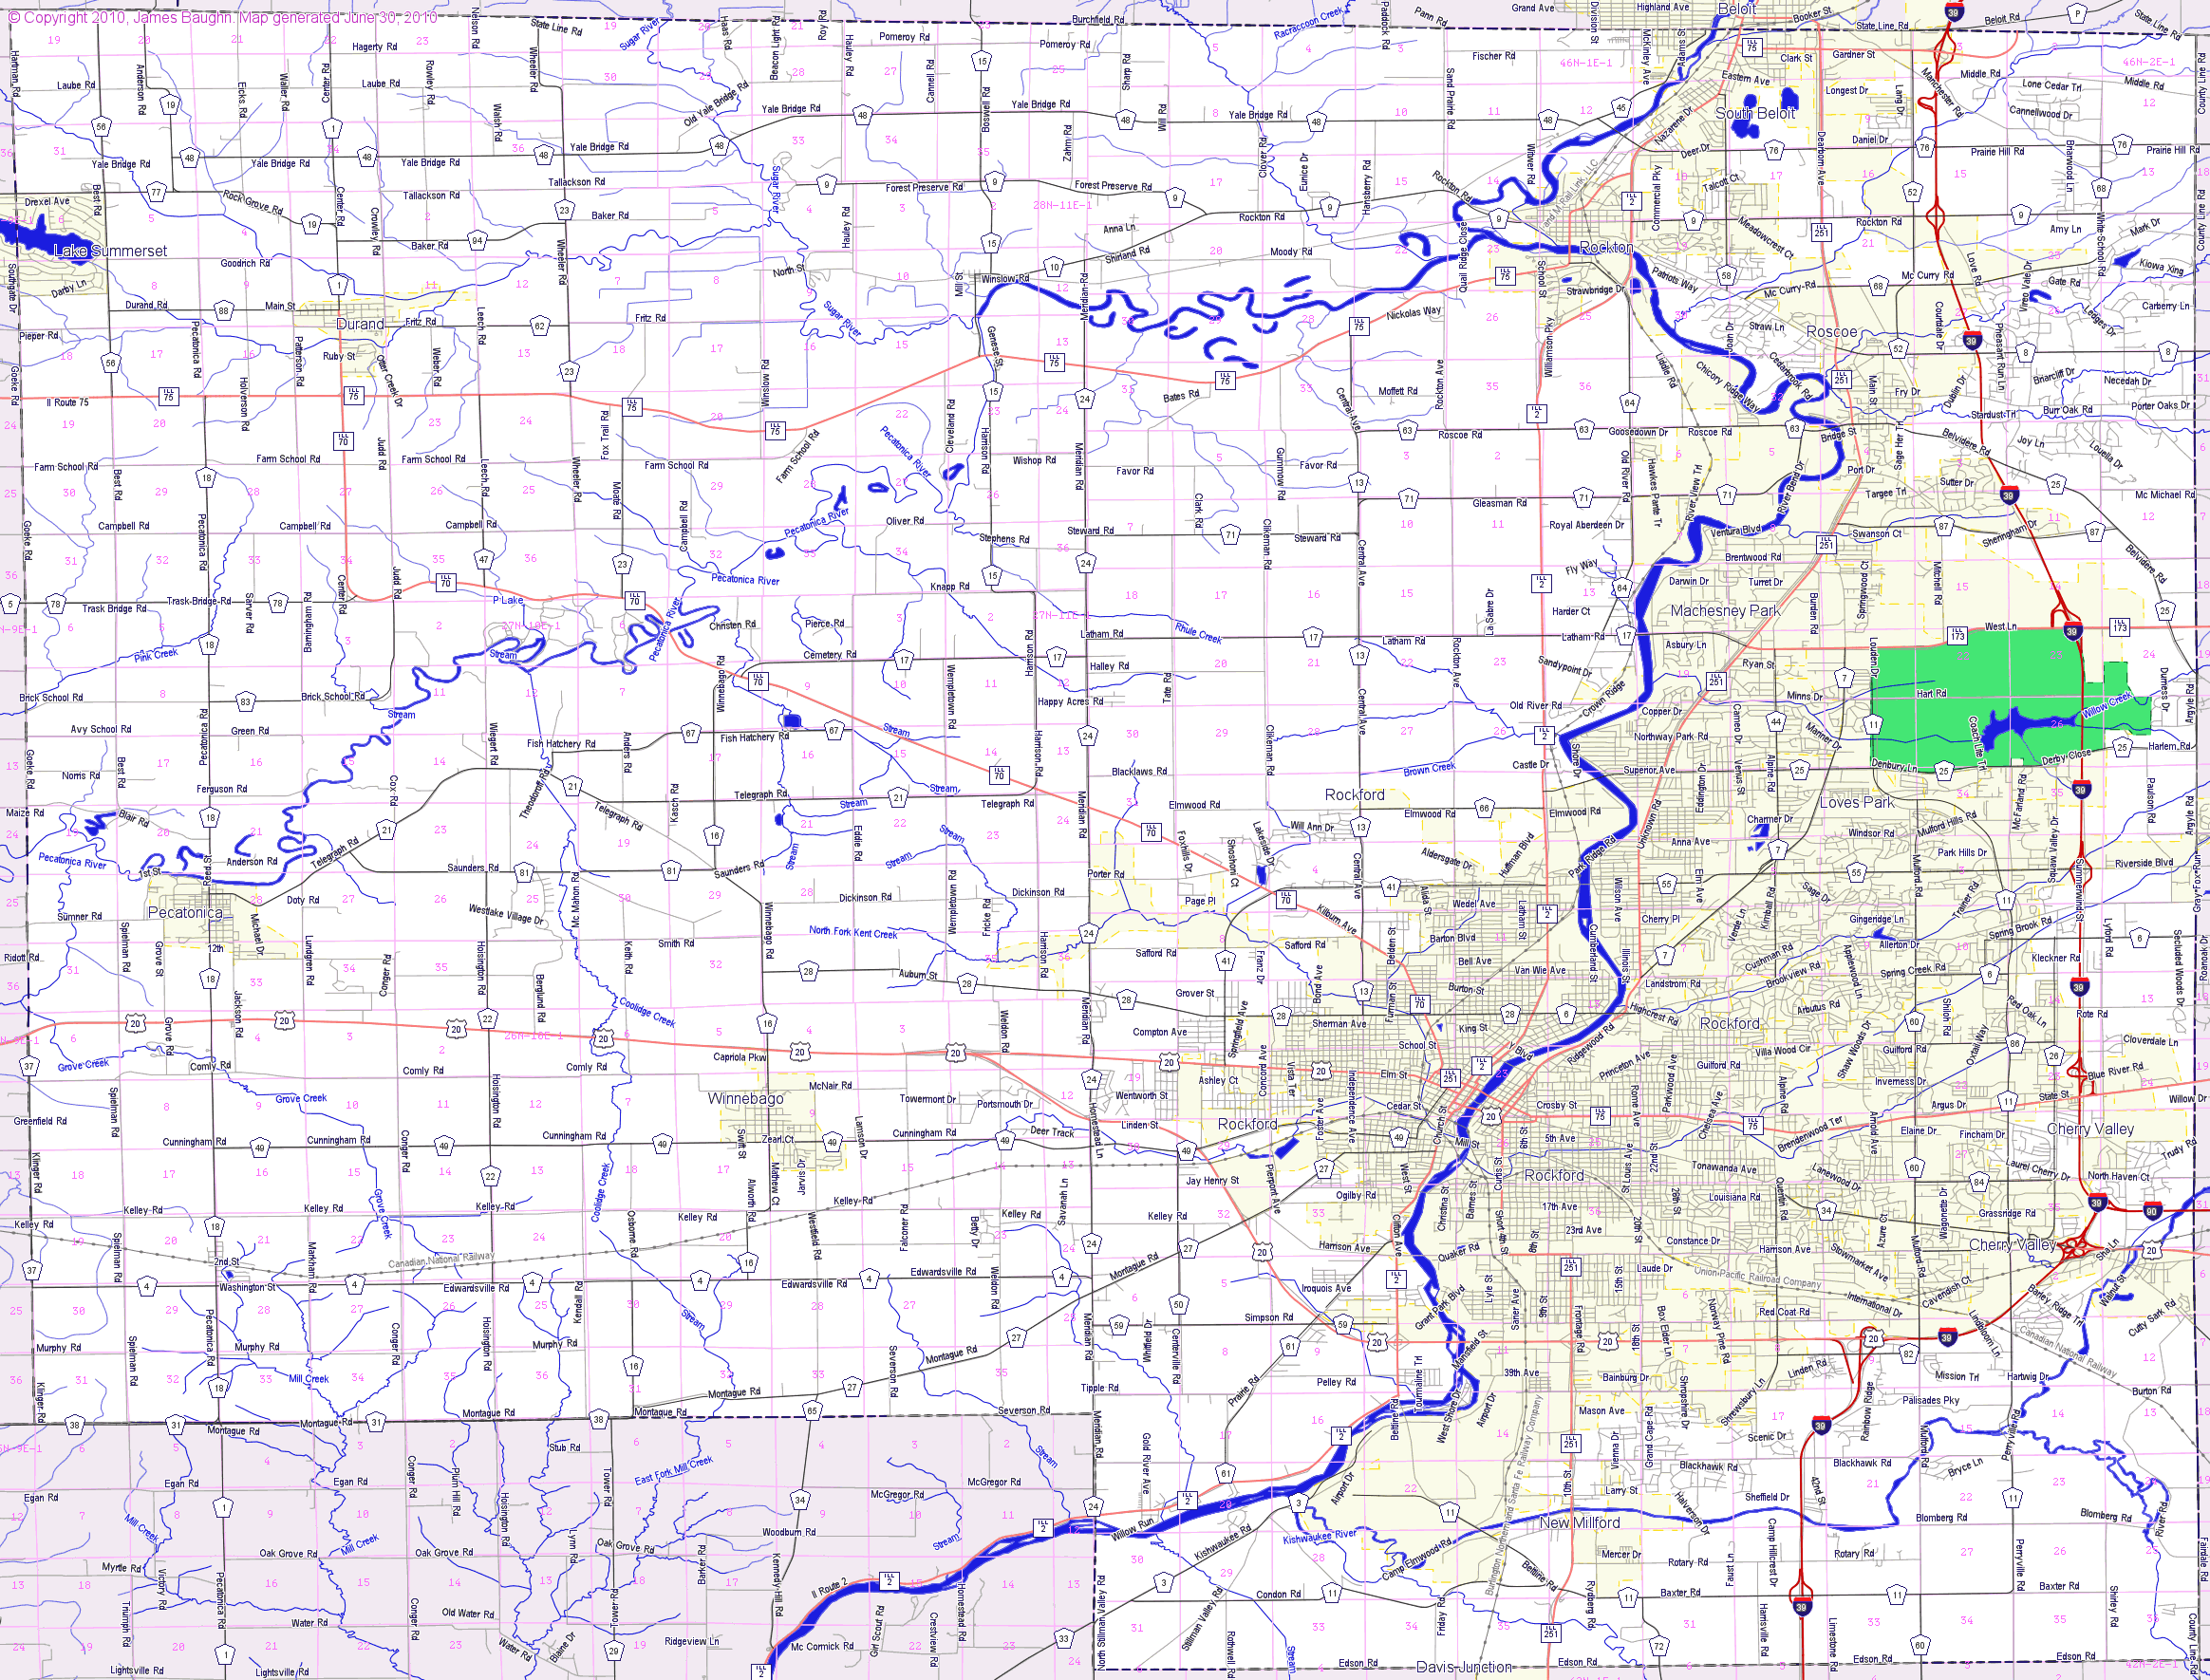 map of illinois suburbs, map of indiana, map of fl, map of illinois counties, map of pa, map of usa, map of illinois cities, map of mi, map of ny, map of state illinois, map of chicago, map of wi, map of northern illinois, map of galesburg illinois, map of mo, map of addison illinois, map of id, map of ks, map of new mexico, map of ia, on map of ill